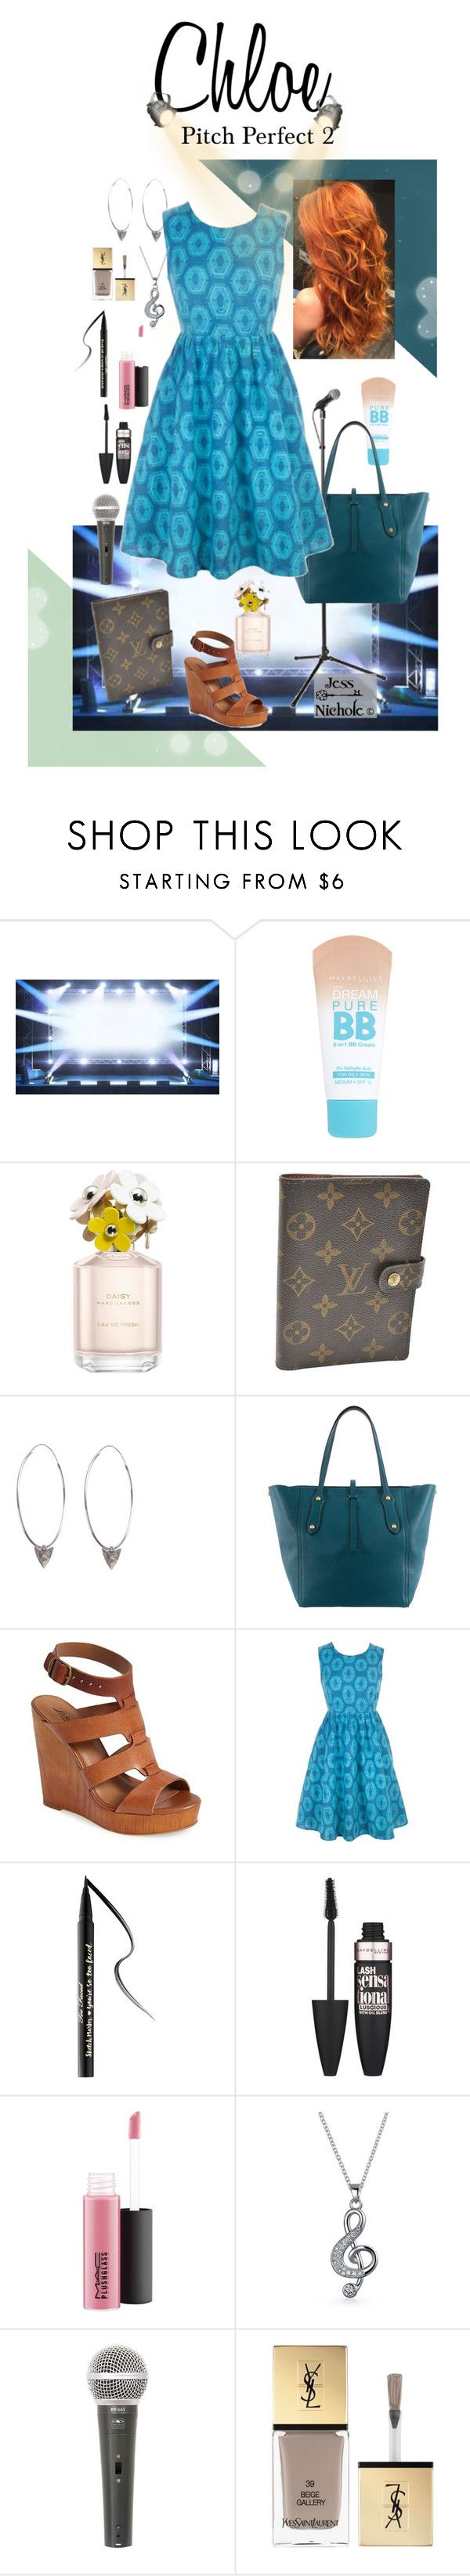 """Pitch Perfect 2: Chloe"" by jess-nichole ❤ liked on Polyvore featuring Maybelline, Marc Jacobs, Louis Vuitton, Rachel Entwistle, Annabel Ingall, Lucky Brand, Too Faced Cosmetics, MAC Cosmetics, Bling Jewelry and Galaxy Audio"